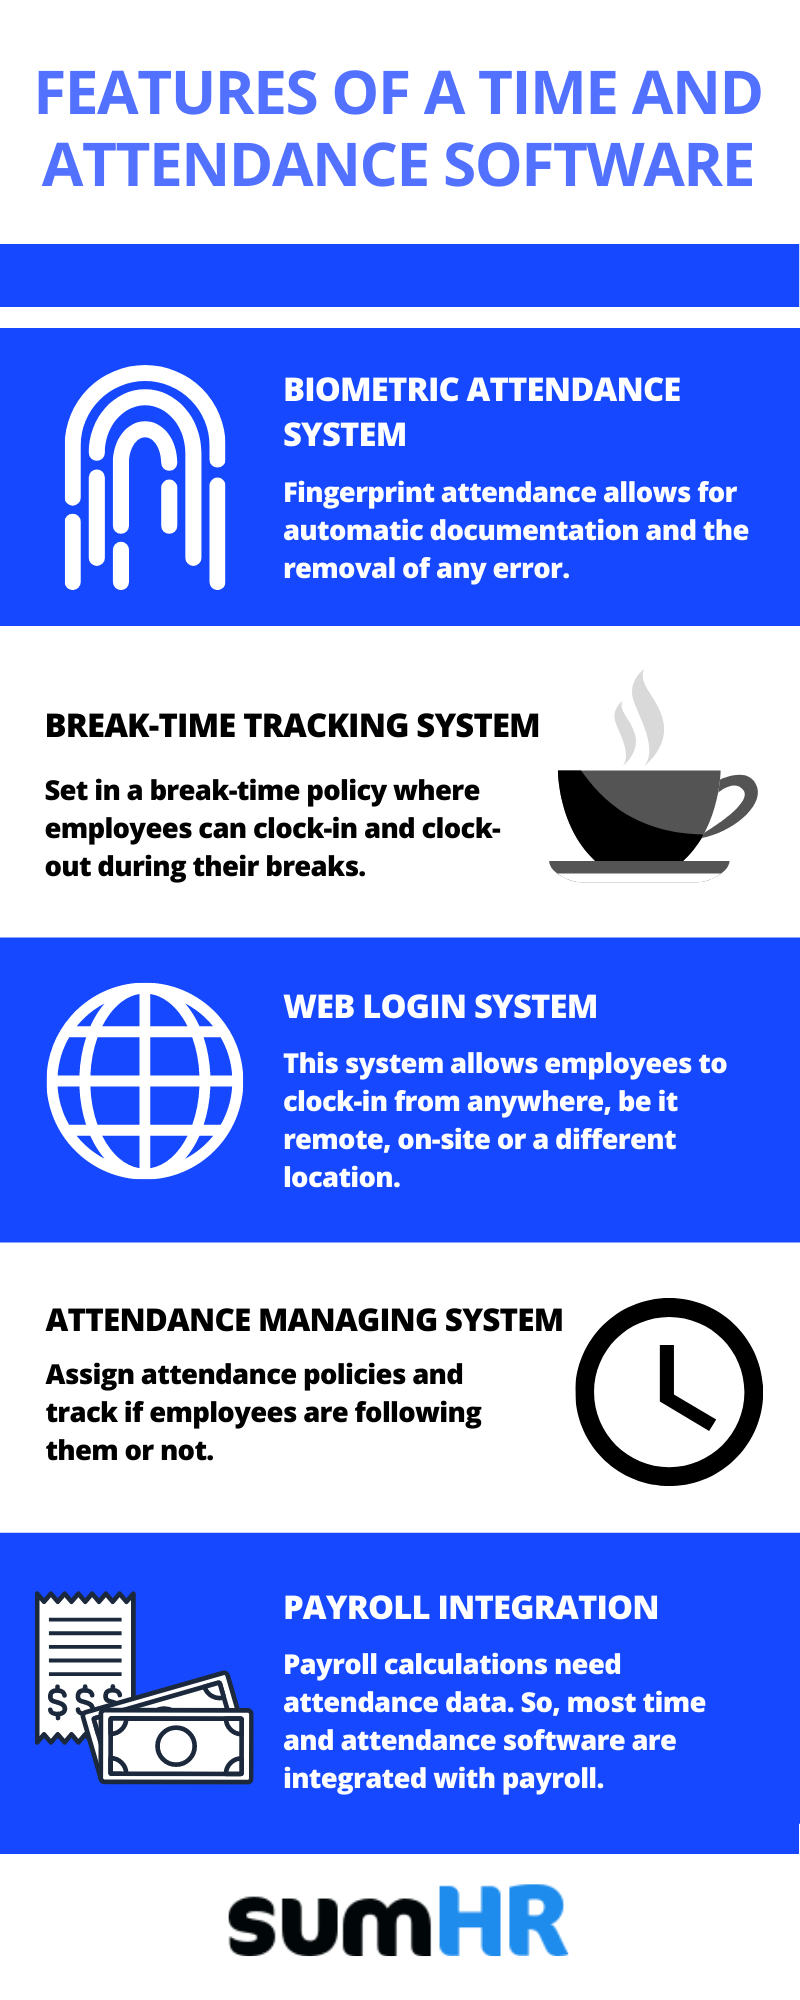 Features of attendance management system or attendance management software